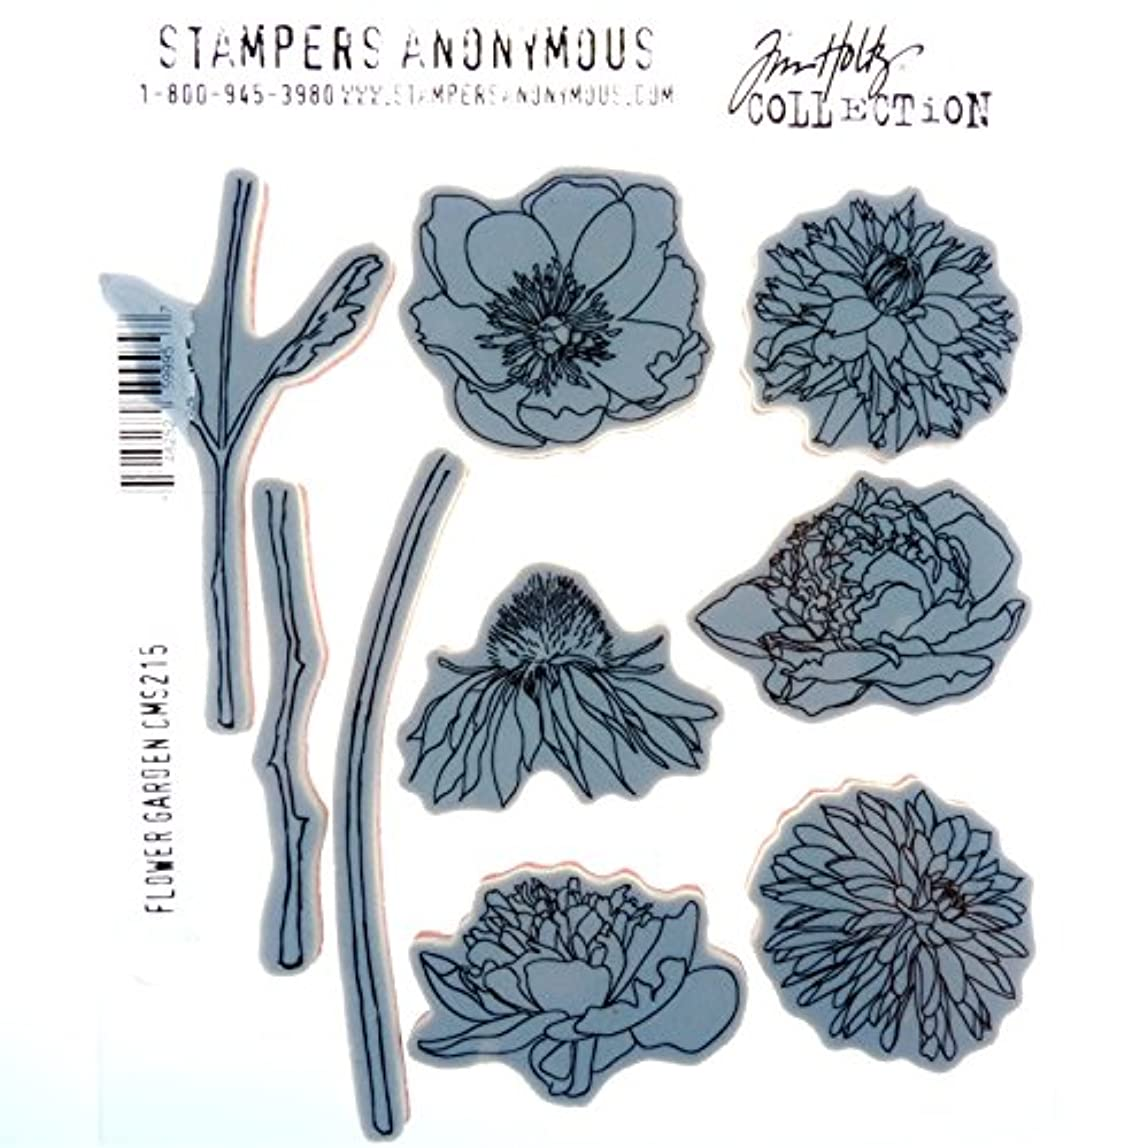 Stampers Anonymous Tim Holtz Cling Rubber Flower Garden Stamp Set, 7 x 8.5 ihfupoi562161